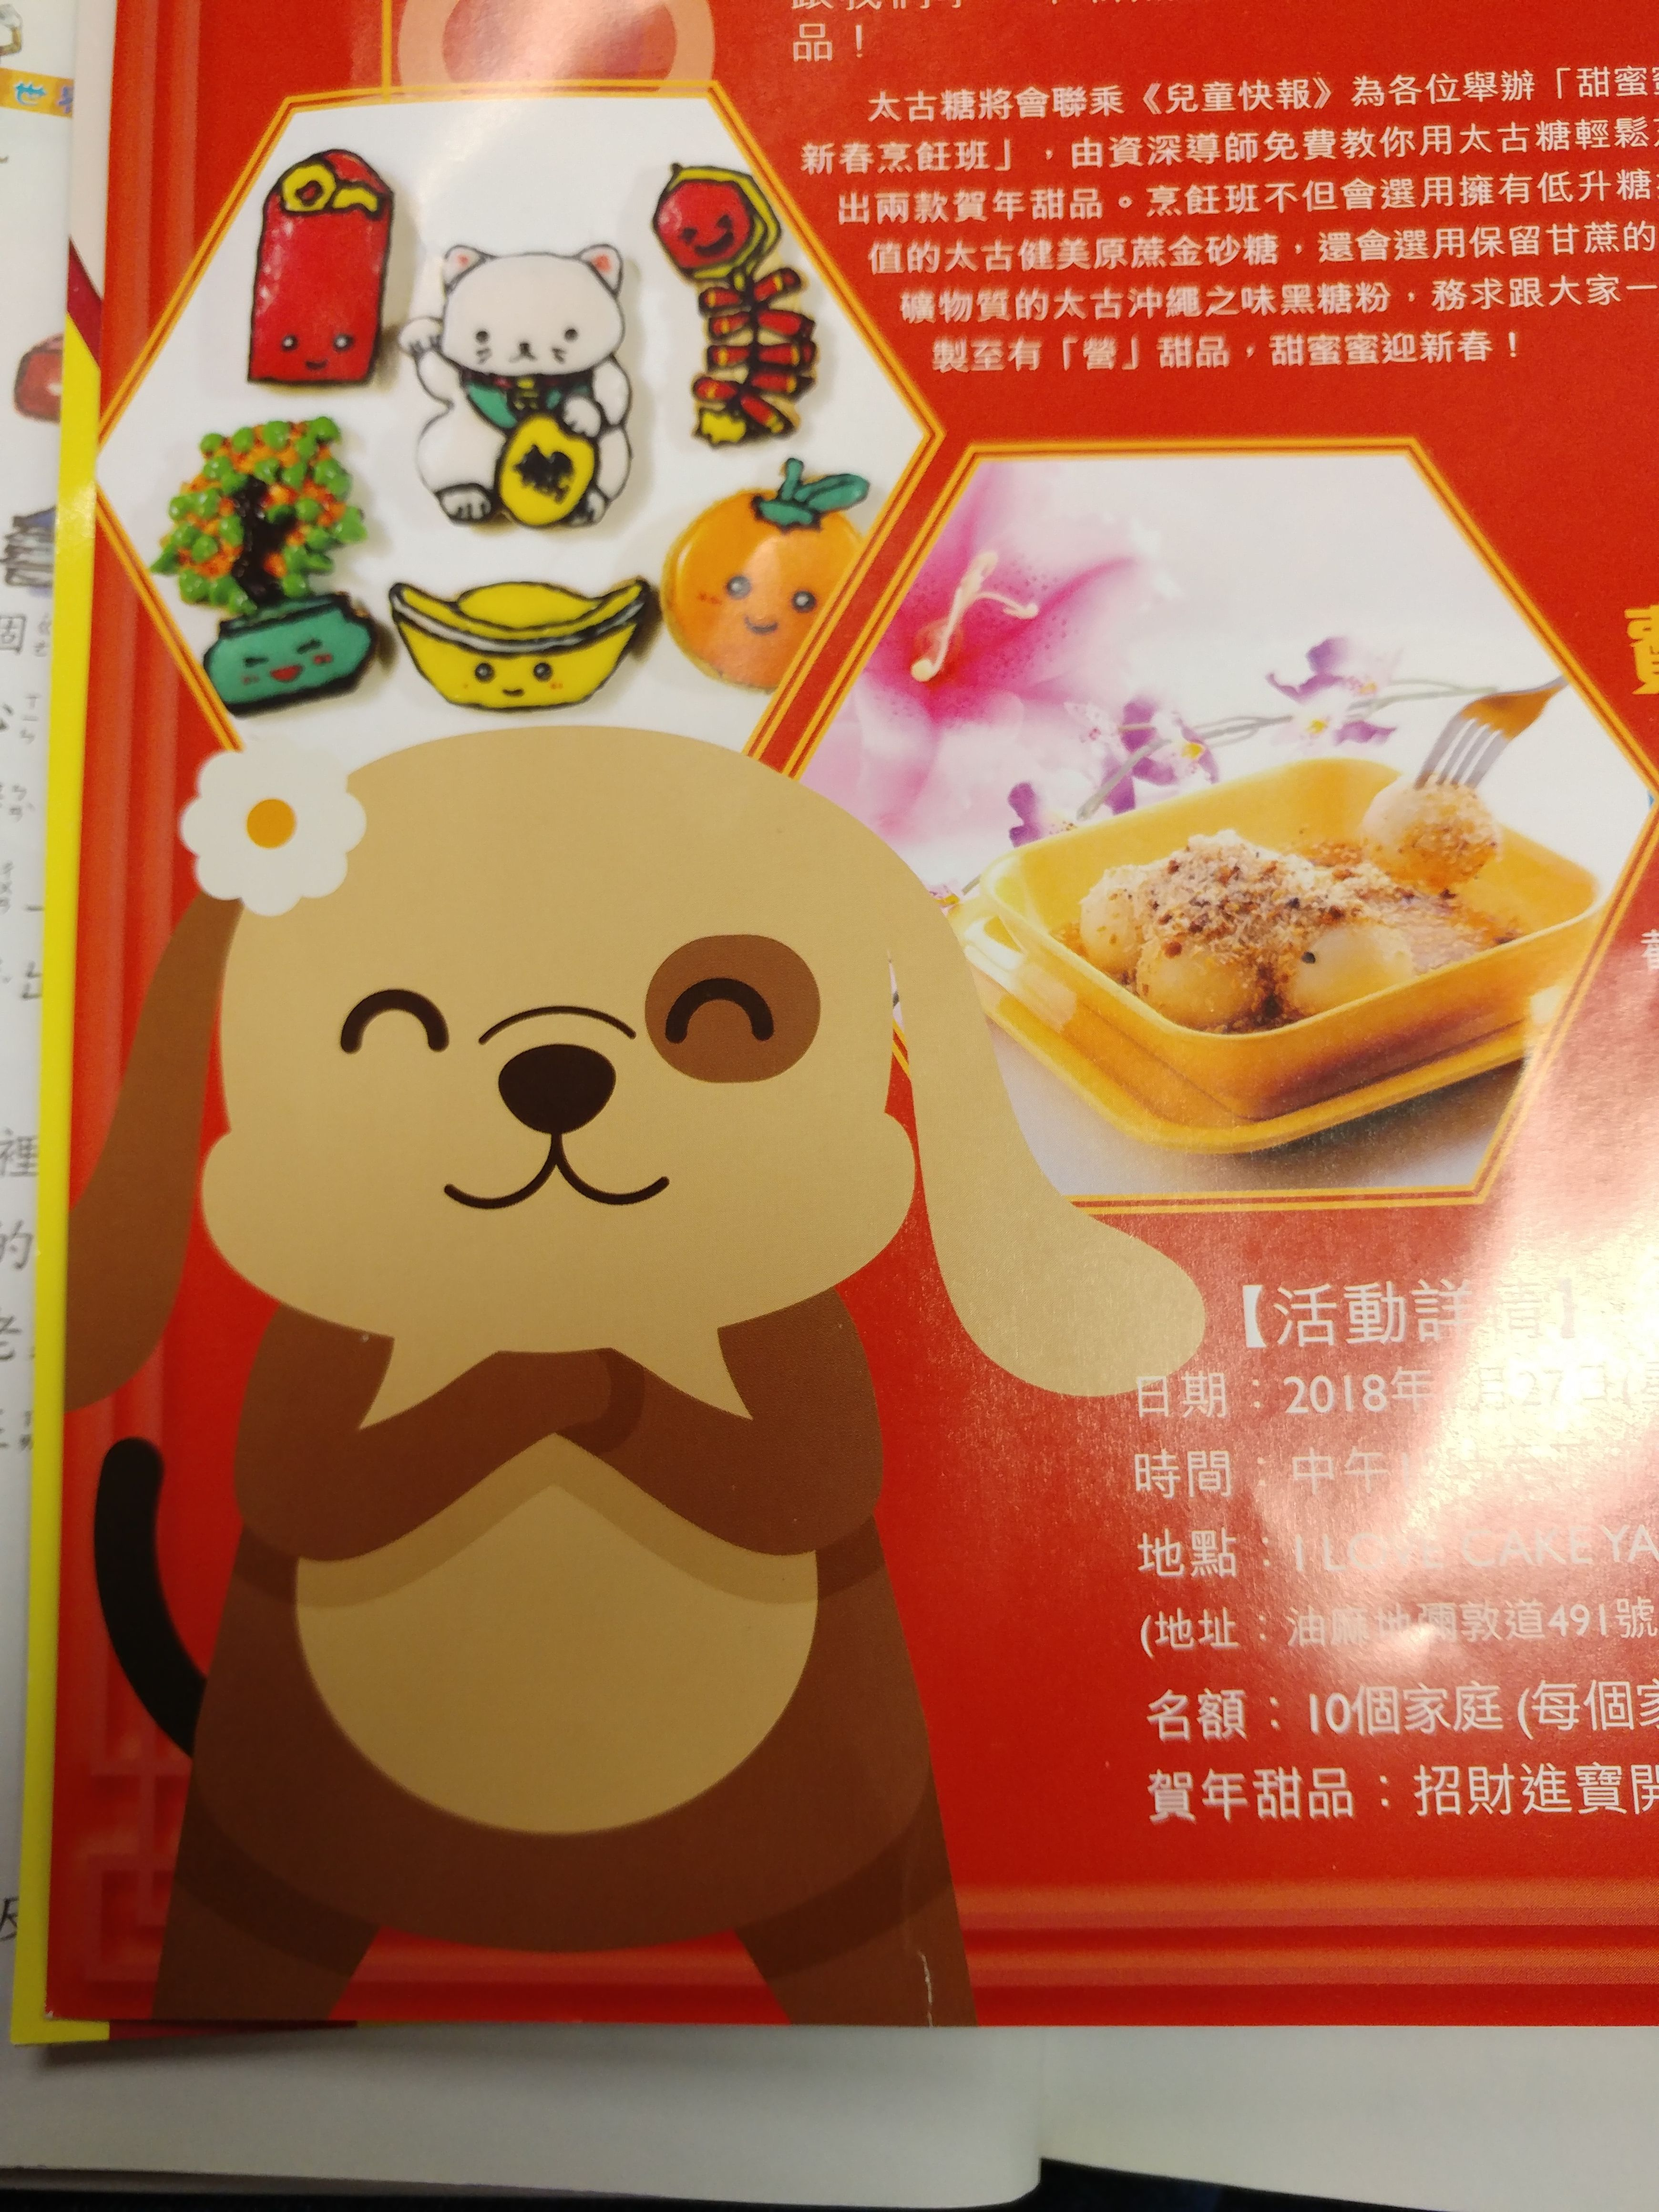 Pin By 花雨tibbie On Dog Pops Cereal Box Cereal Pops Cereal Box